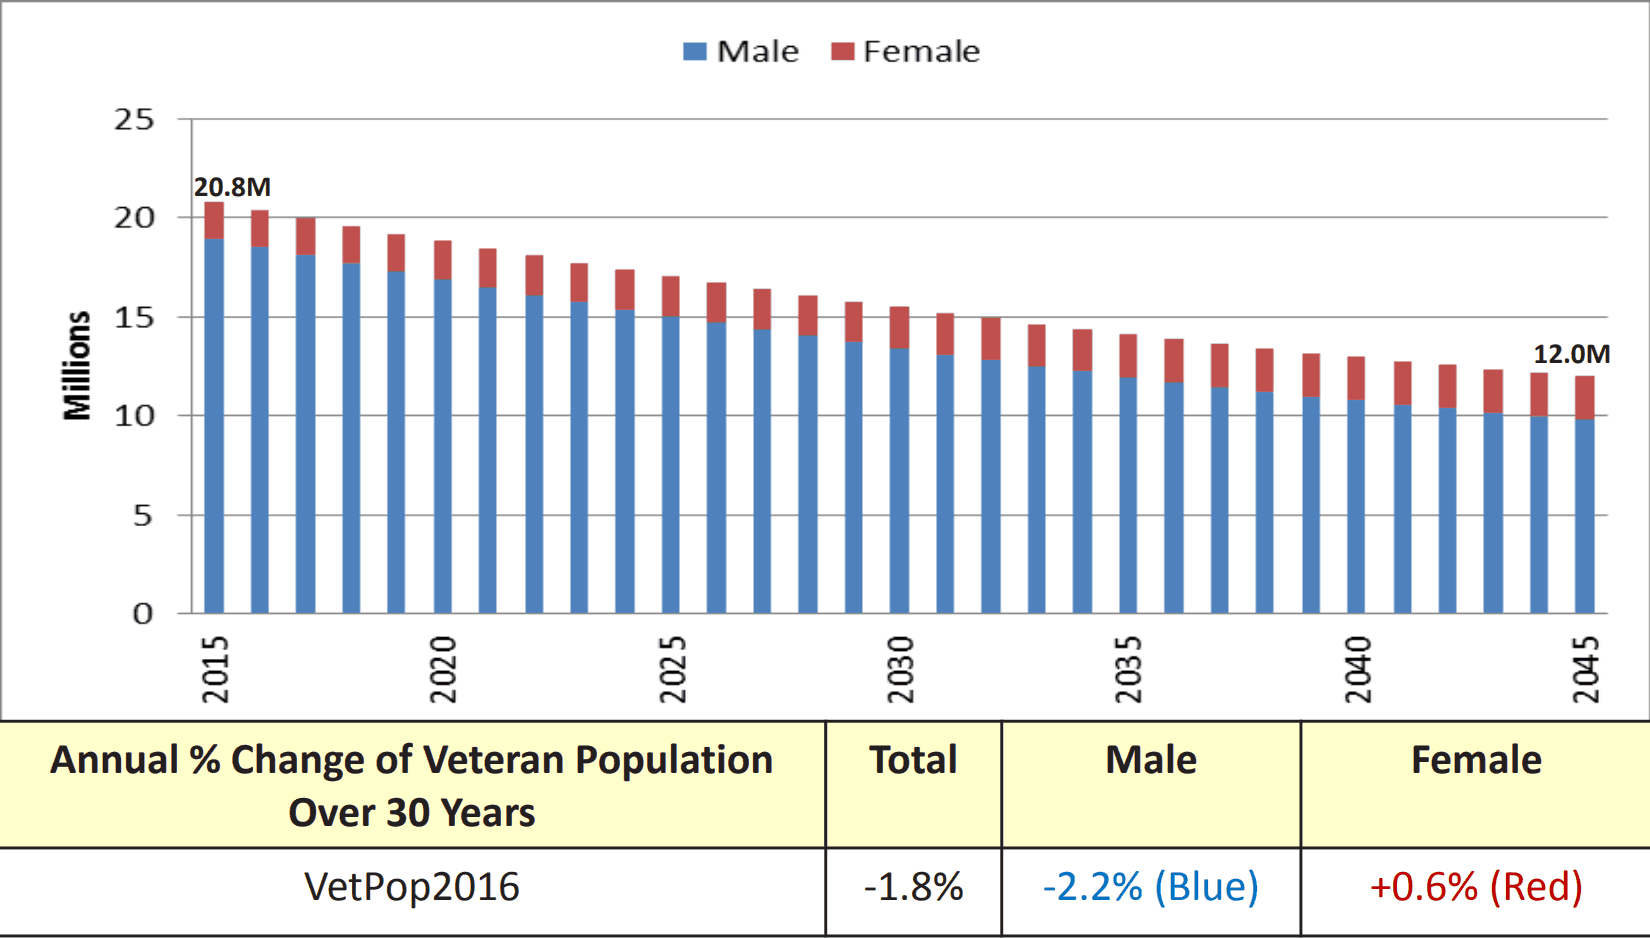 Total Number of Veterans in the US by Year